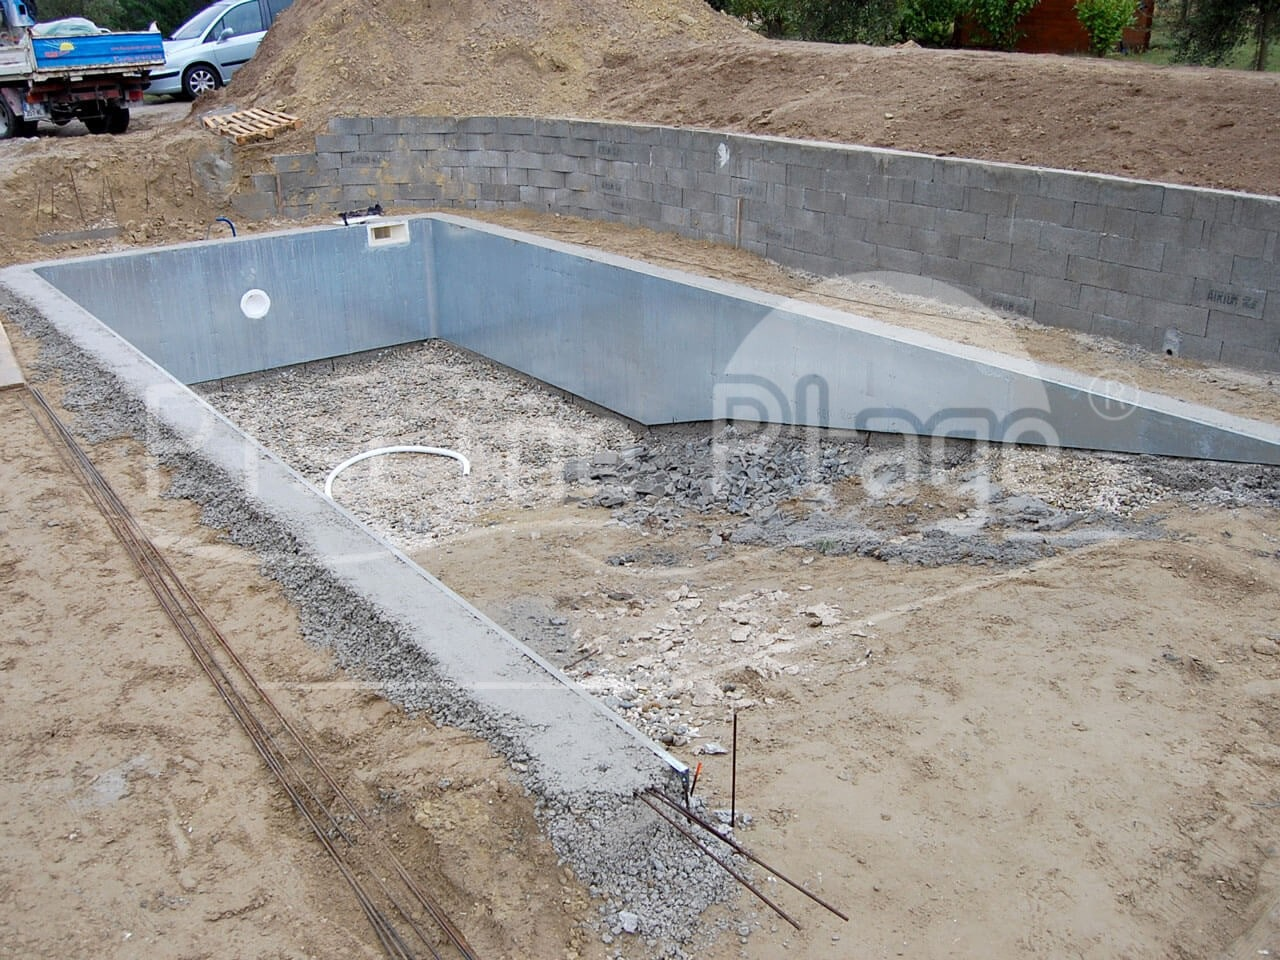 Notre technique de construction piscine plage for Technique construction piscine